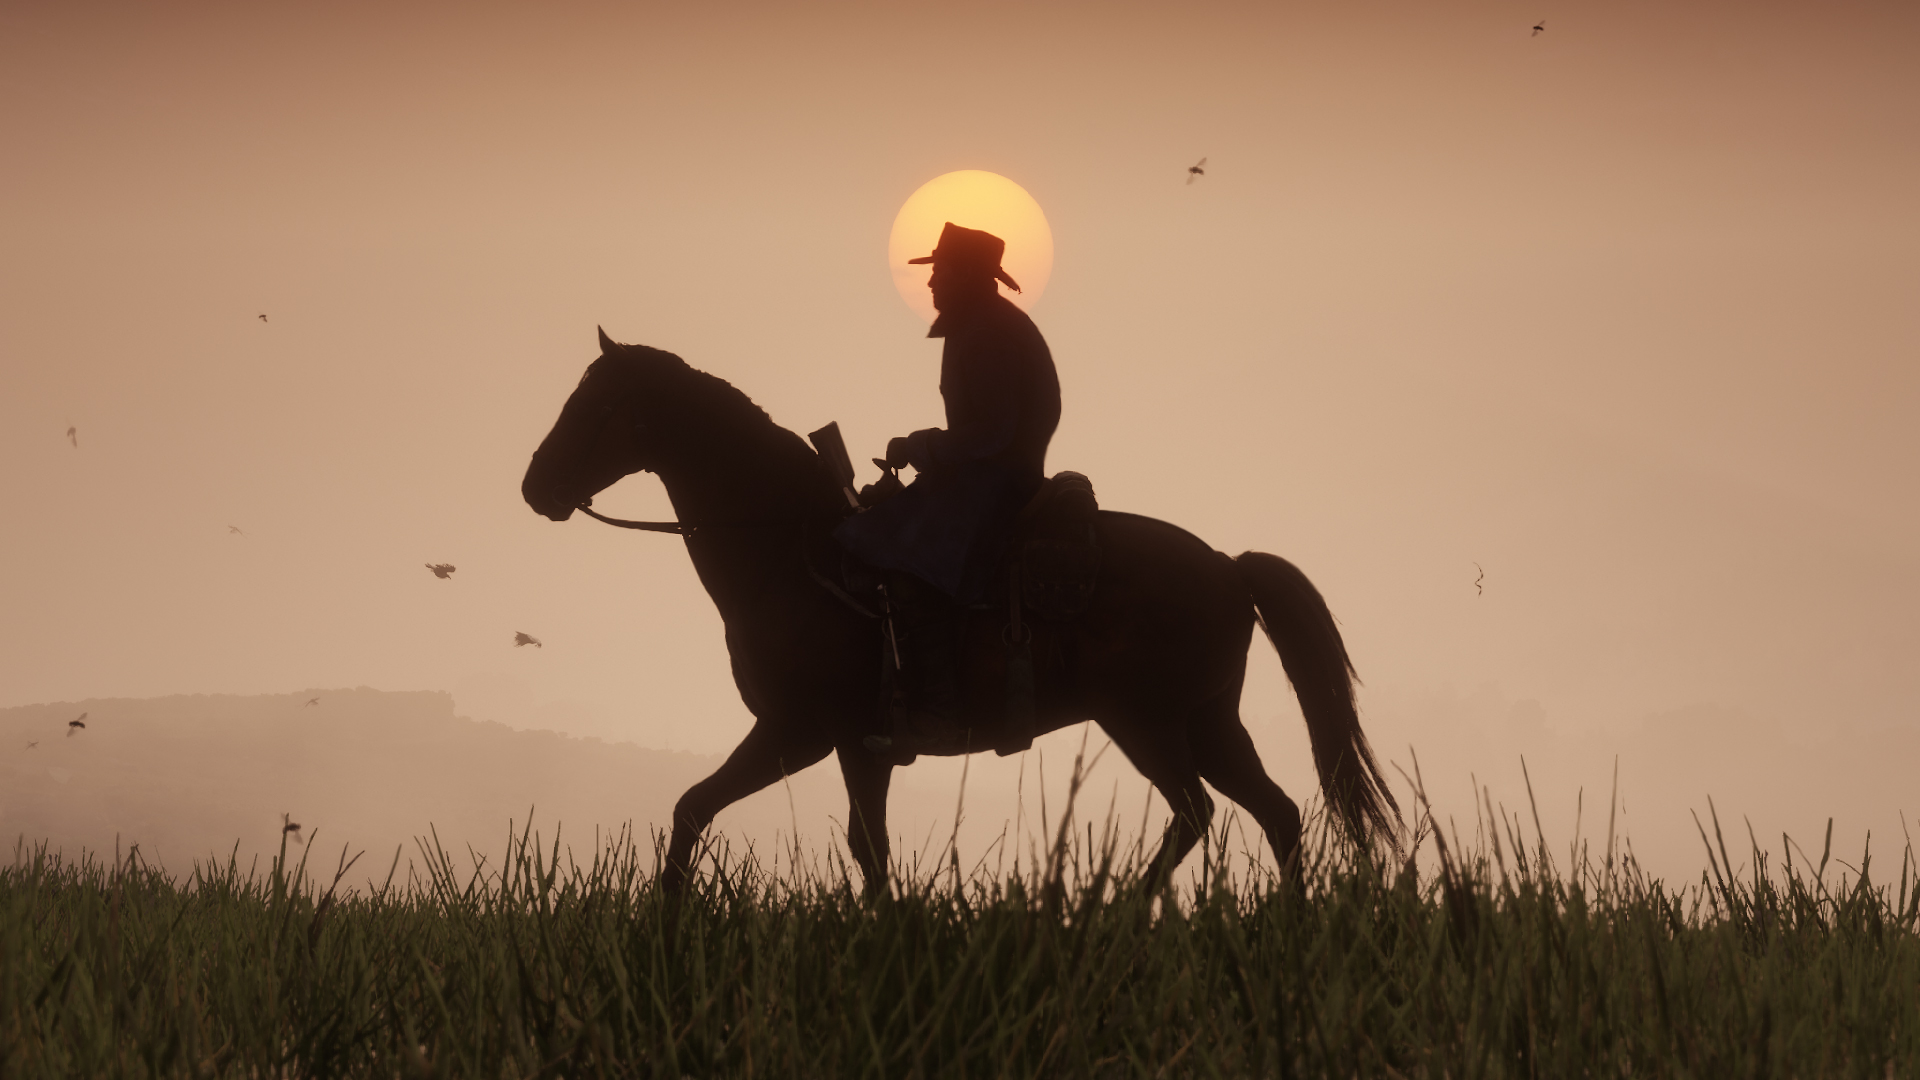 Get Ps4 Red Dead 2 Wallpaper JPG